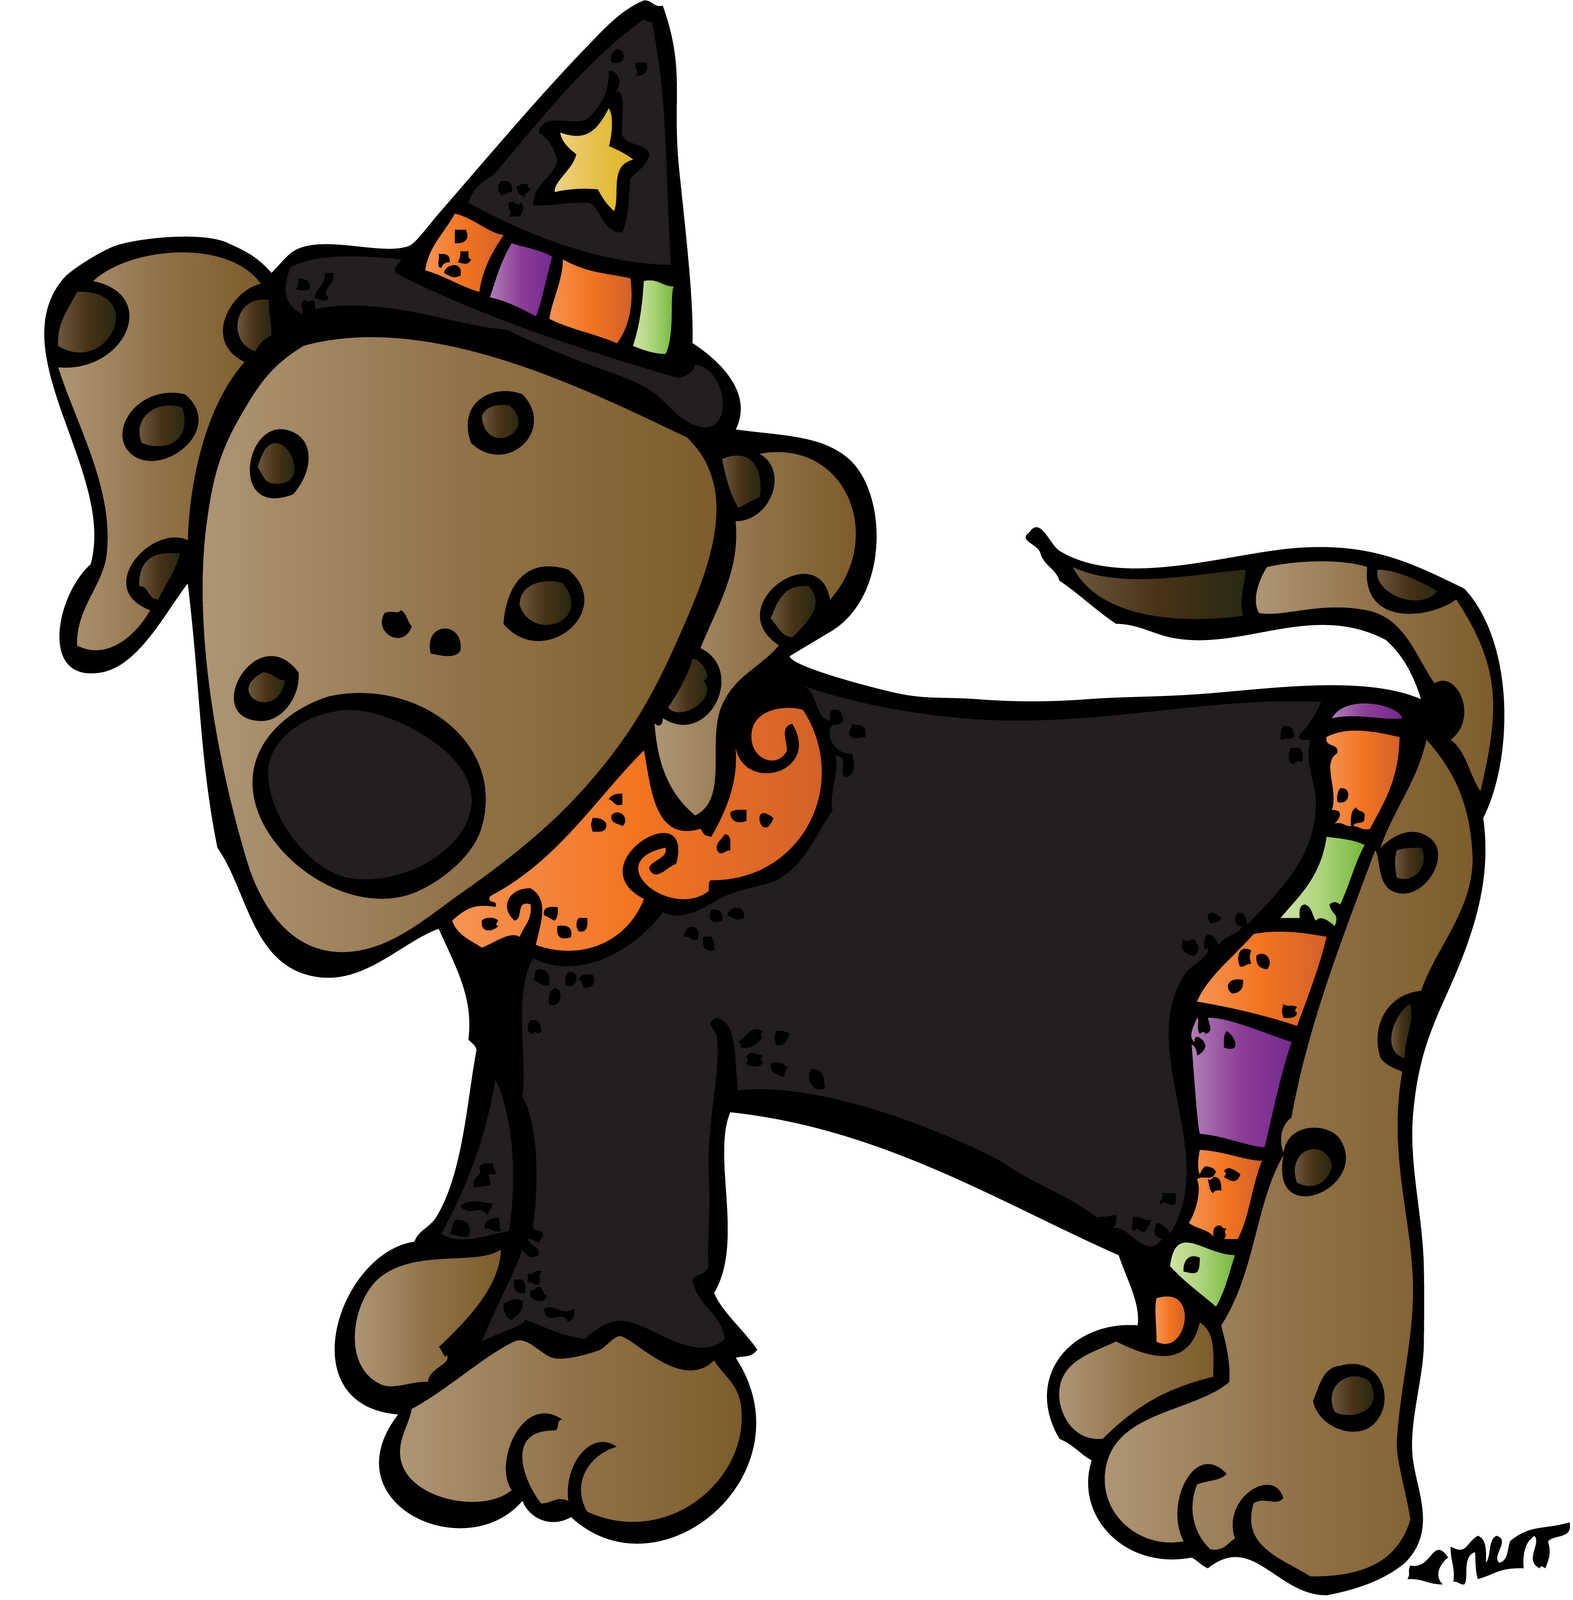 Free clipart cat and dog thanksgiving picture library download 28+ Collection of Free Halloween Dog Clipart | High quality, free ... picture library download